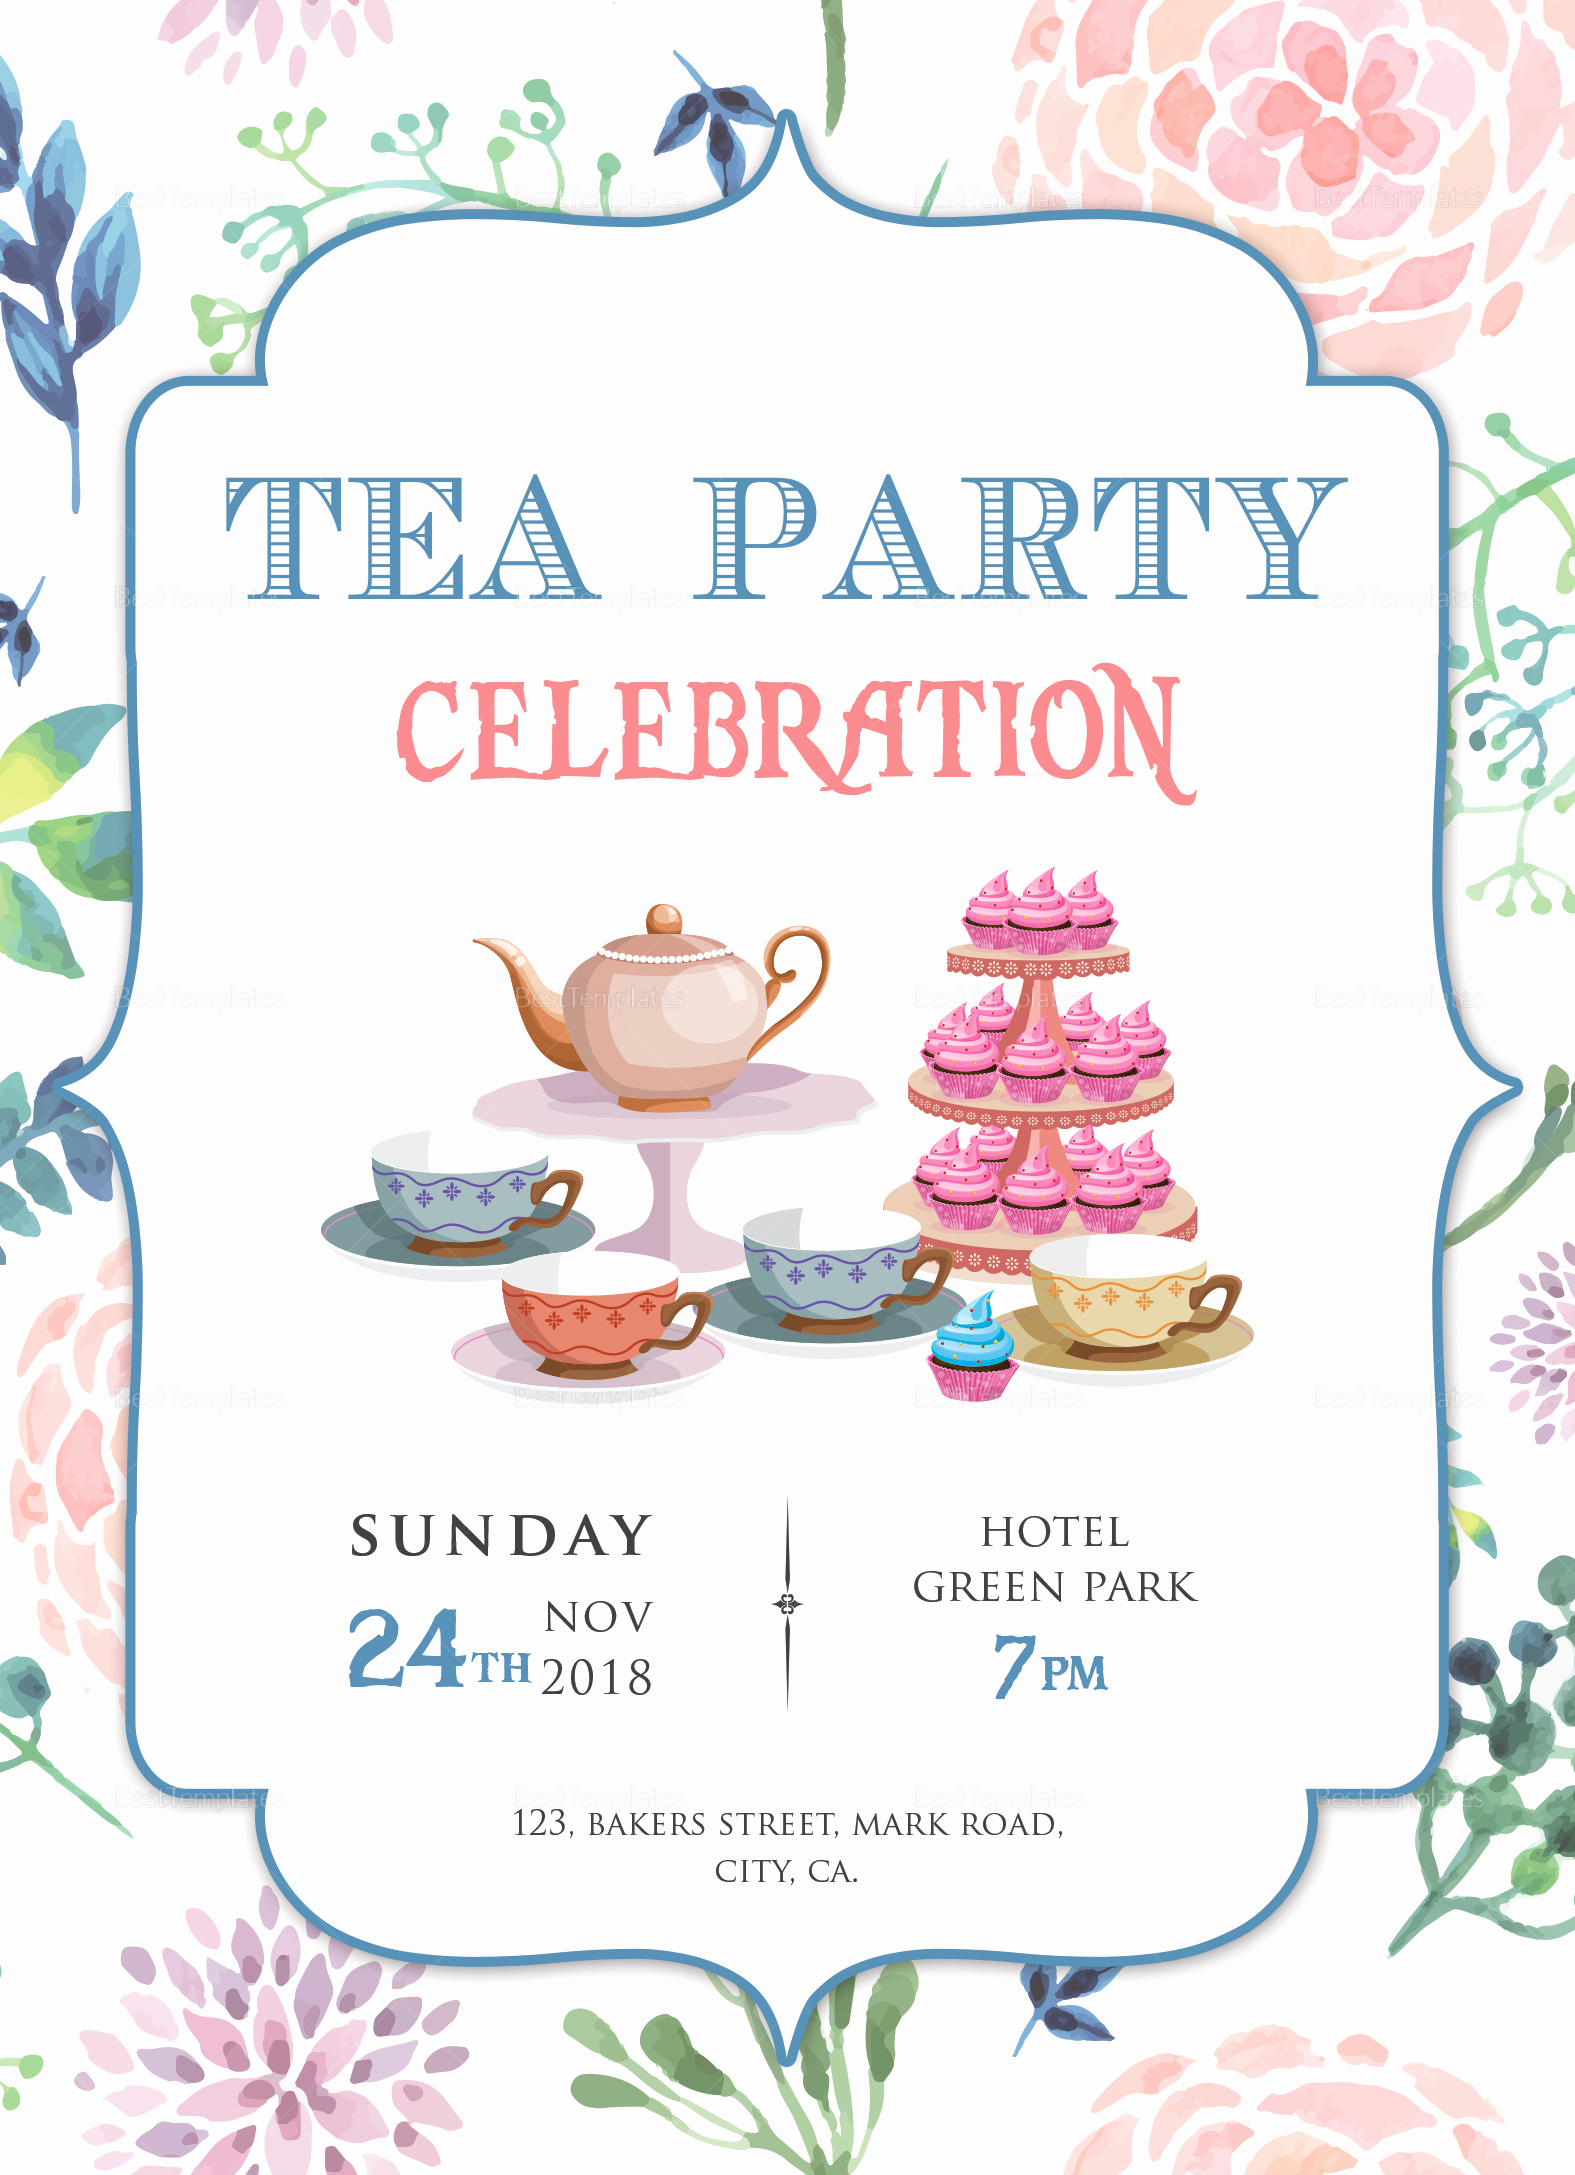 Tea Party Invitation Template Free New Elegant Tea Party Invitation Design Template In Word Psd